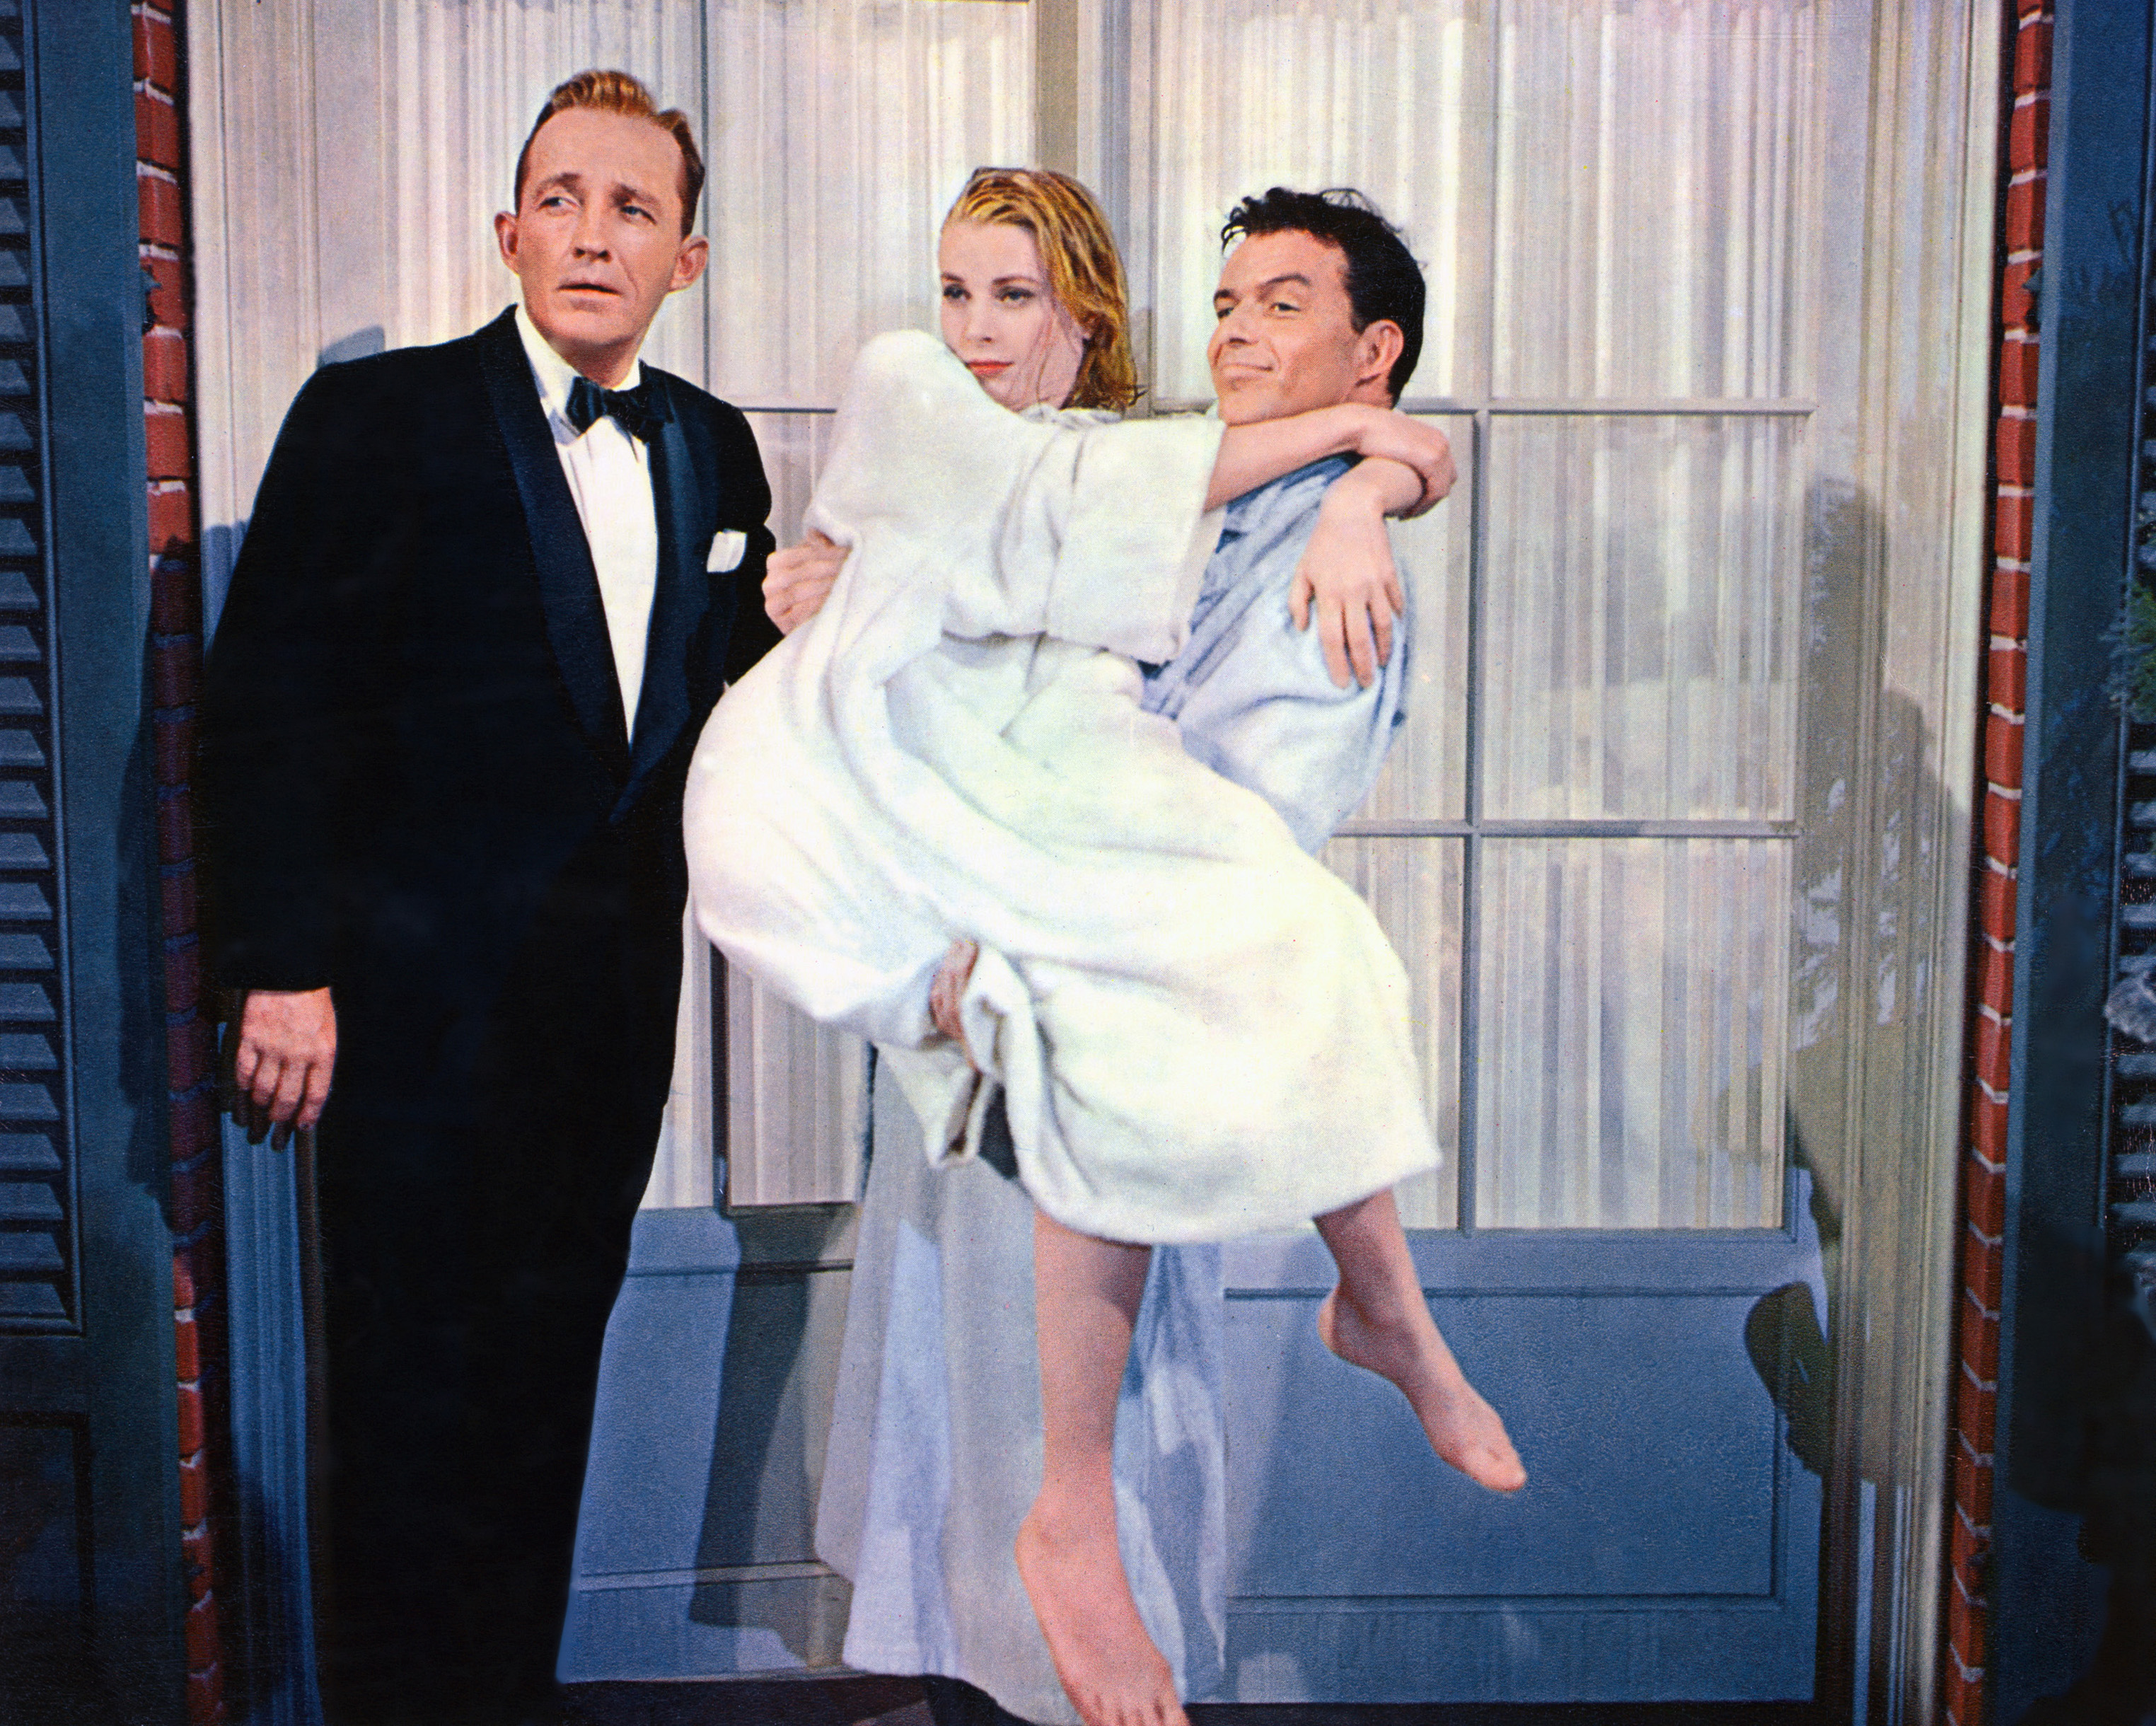 Caption: Bing Crosby, Grace Kelly carried by Frank Sinatra in a publicity still from the film, 'High Society', 1956, Credit: Silver Screen Collection/Getty